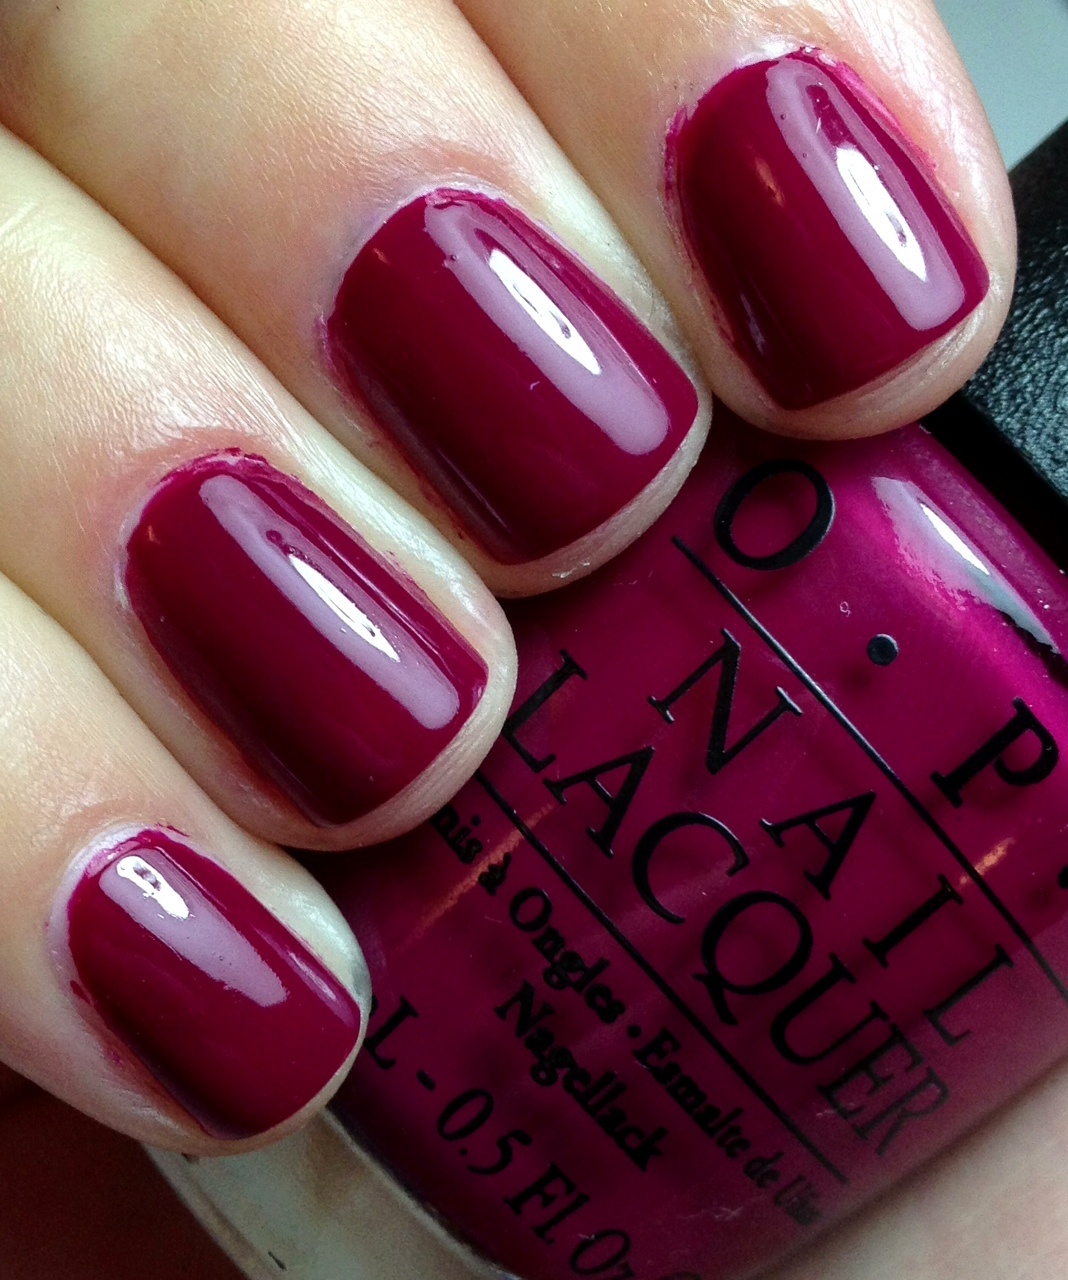 Swatches By An Opi Addict South Beach Collection Swatches